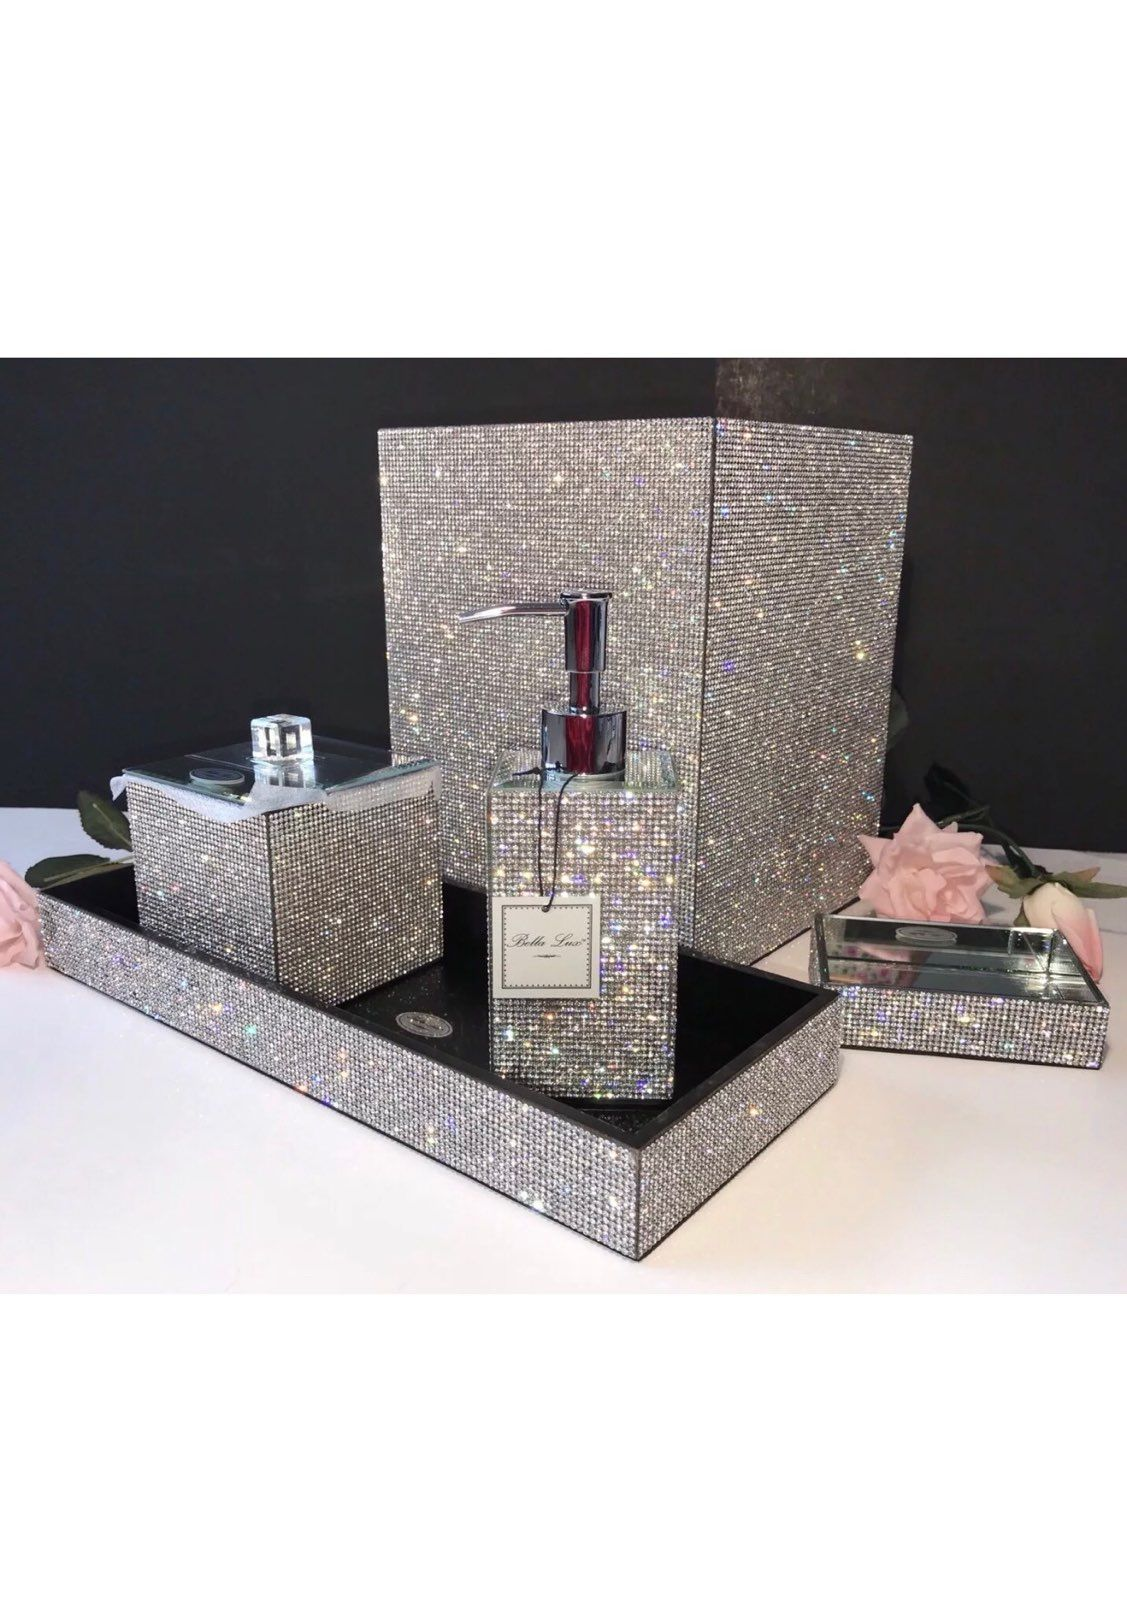 New never used bathroom set by Bella Lux with Rhinestone covered